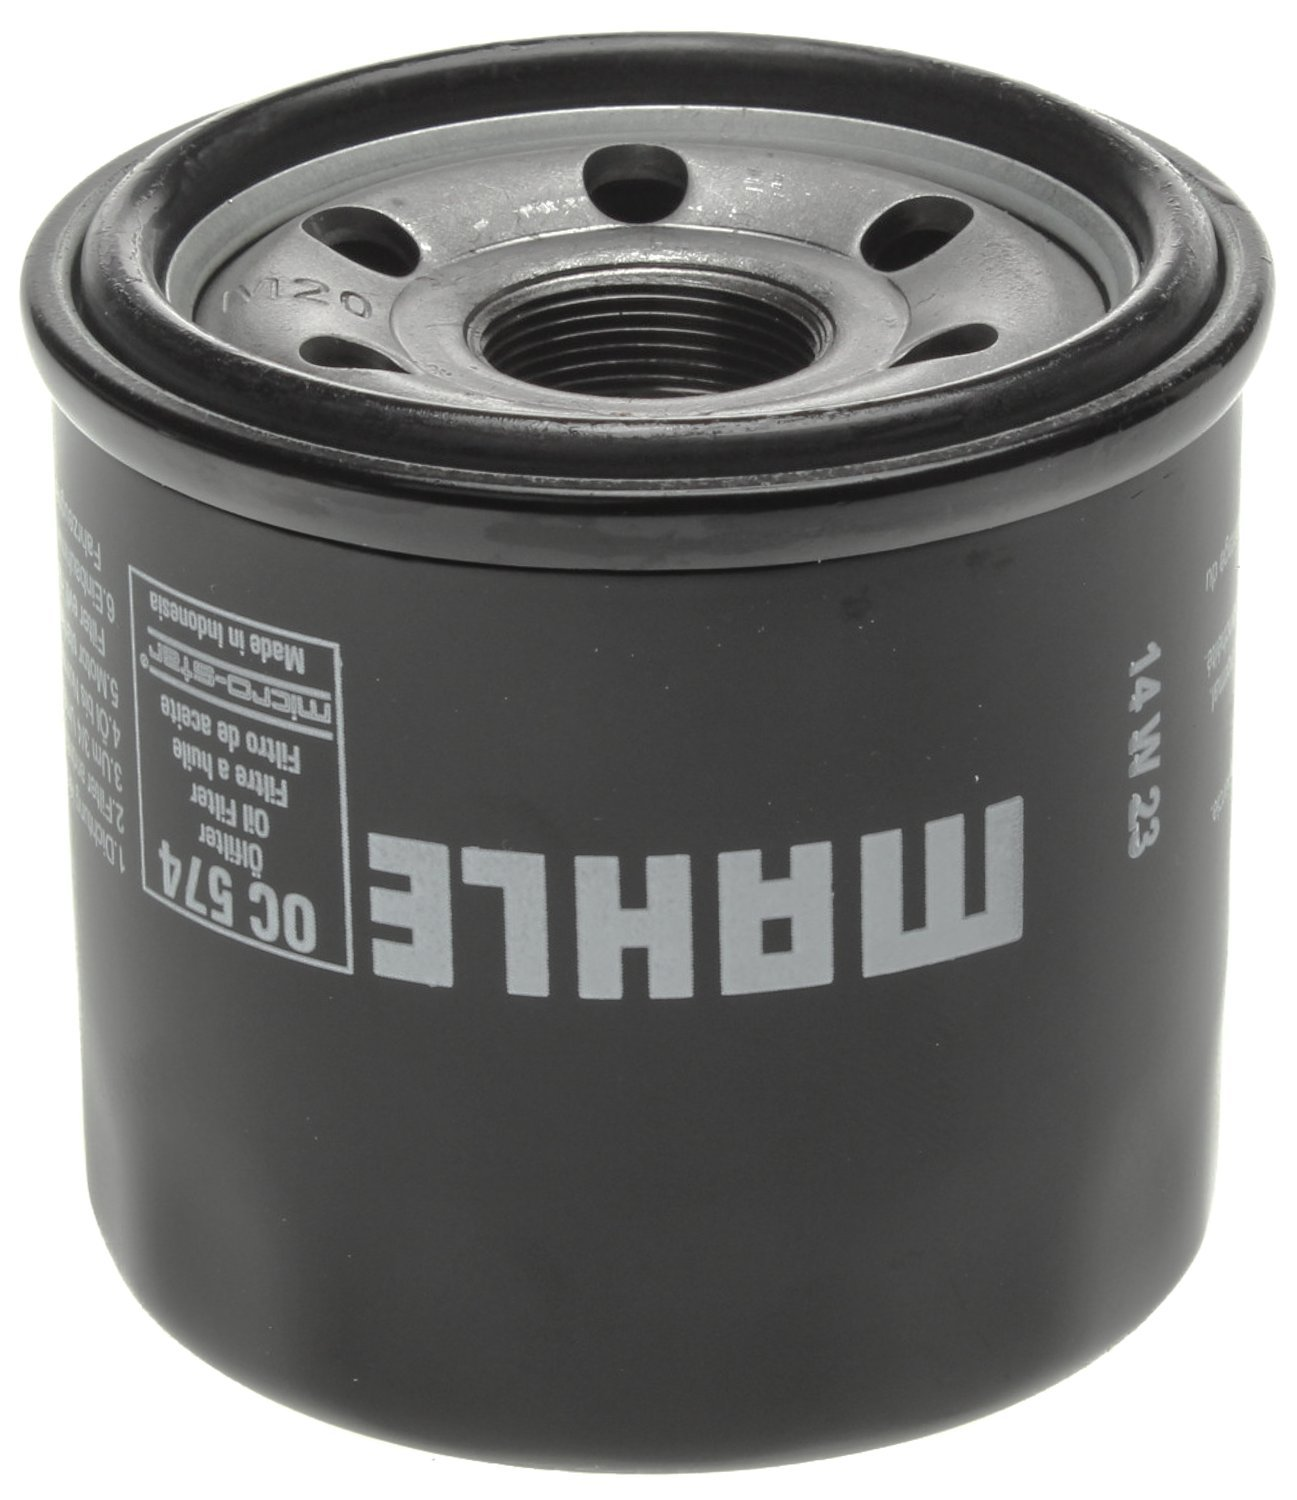 MAHLE Original OC 574 Engine Oil Filter